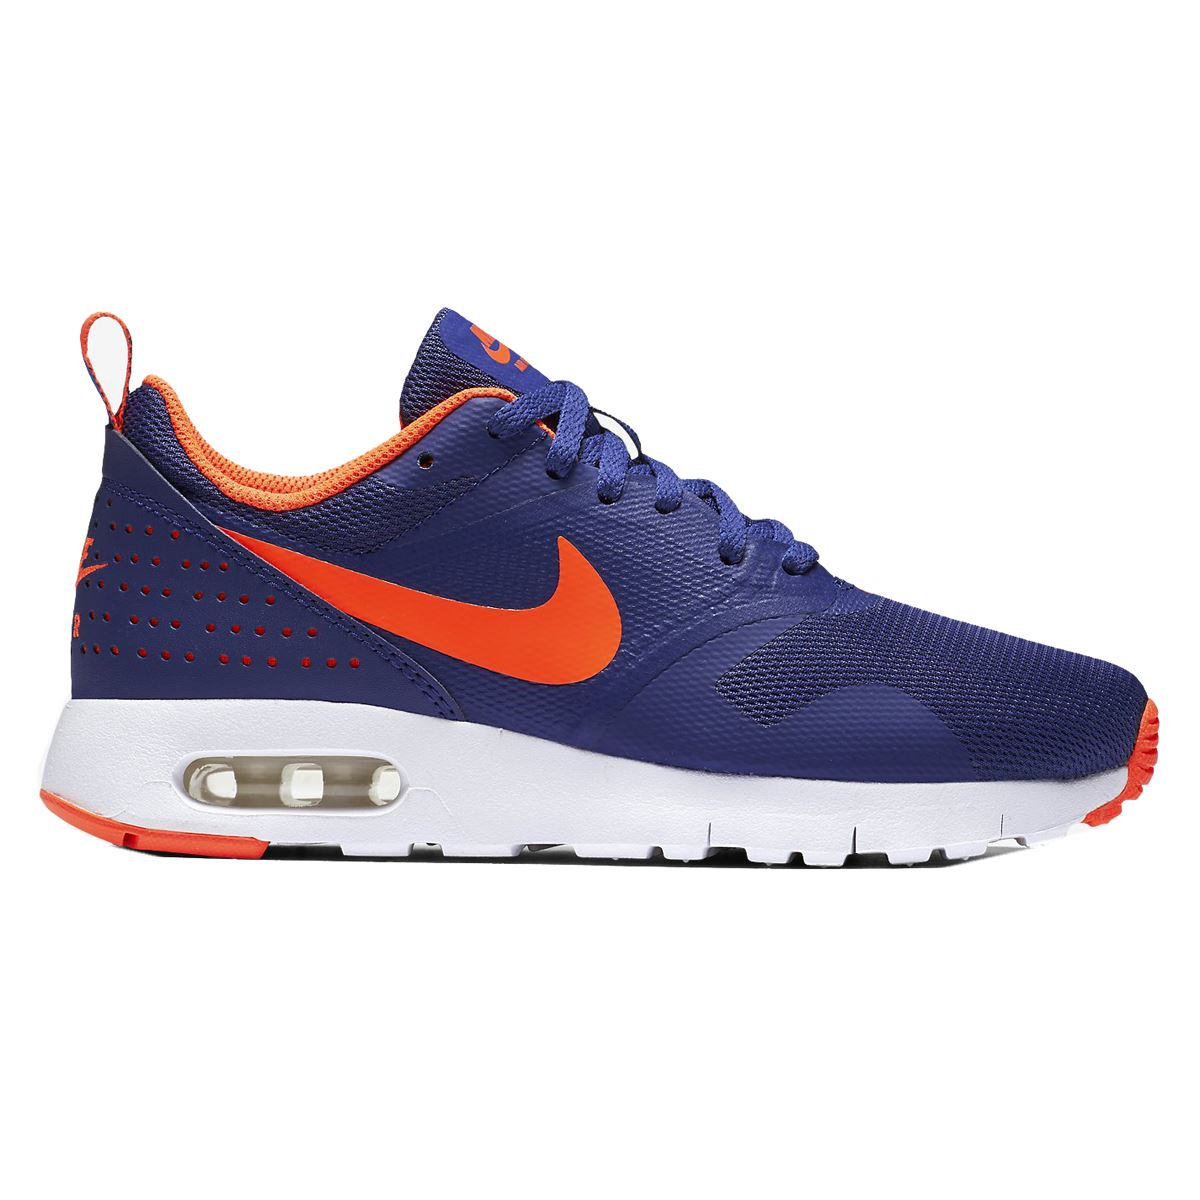 Details about Nike Air Max Tavas Purple Youths Trainers